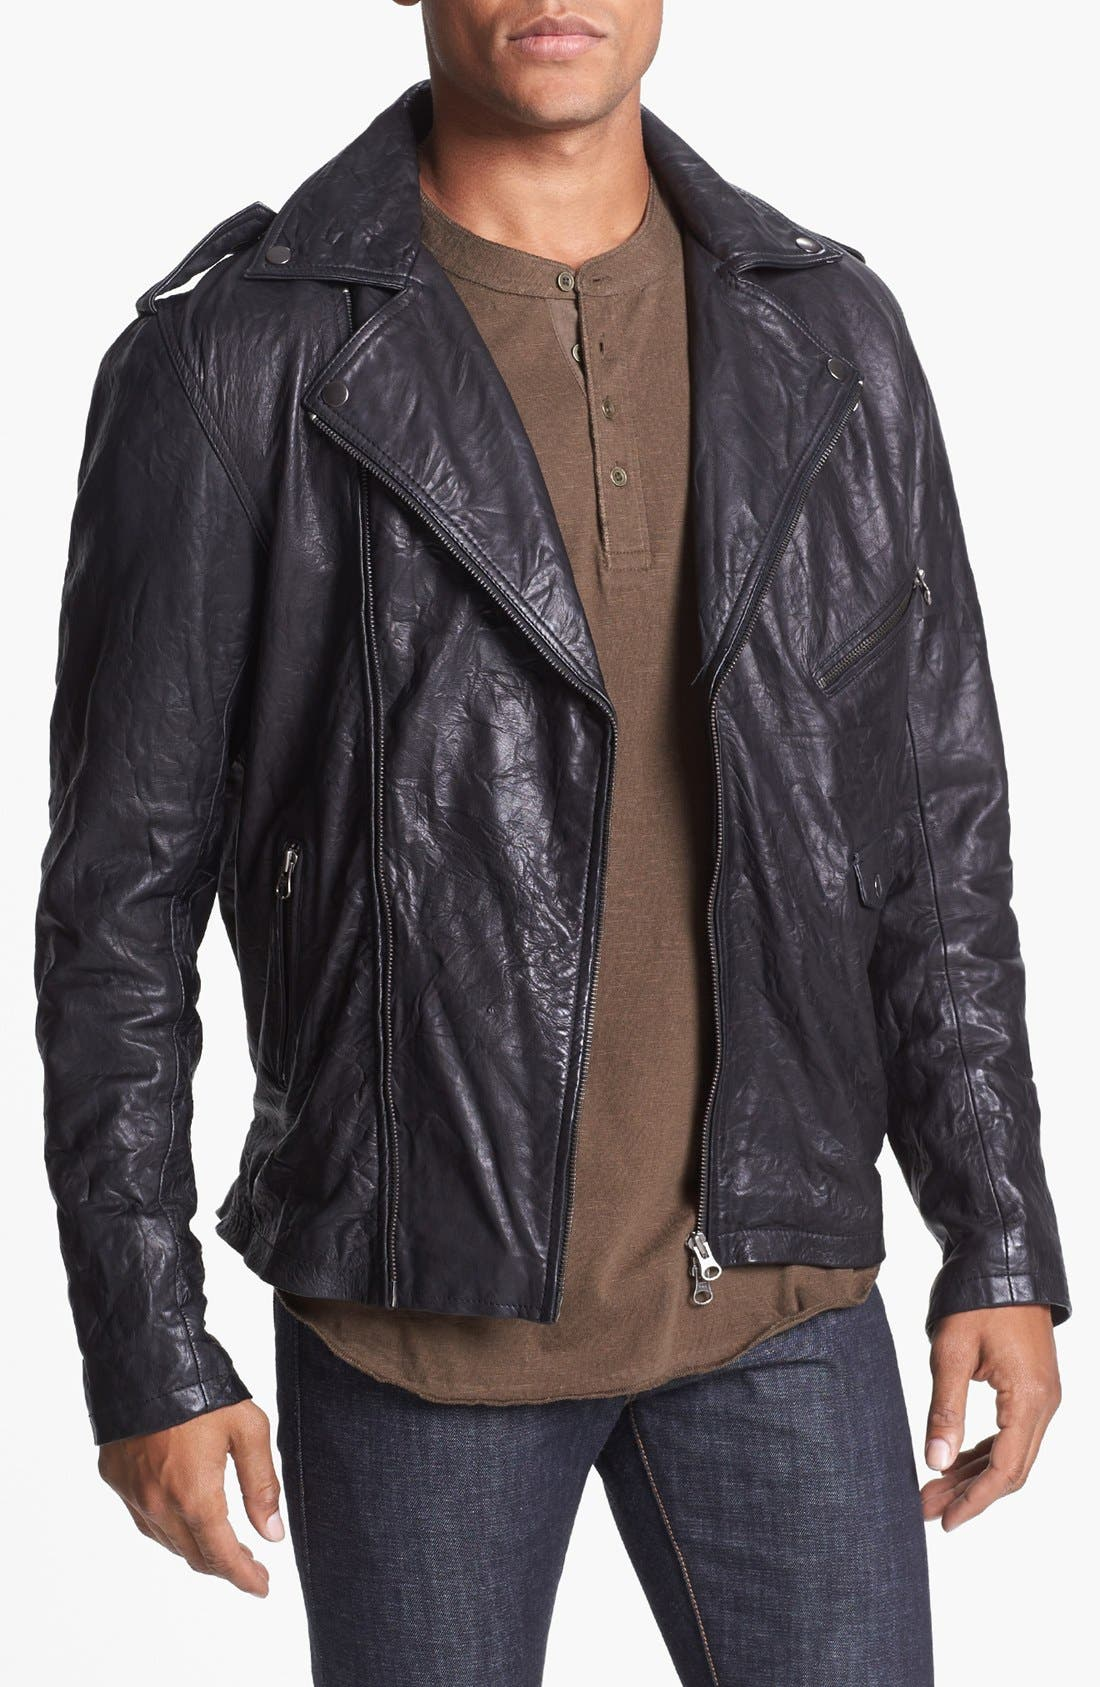 ZANEROBE Leather Biker Jacket, Polo Ralph Lauren Cashmere Blend Scarf & J Brand Skinny Fit Jeans, Main, color, 001